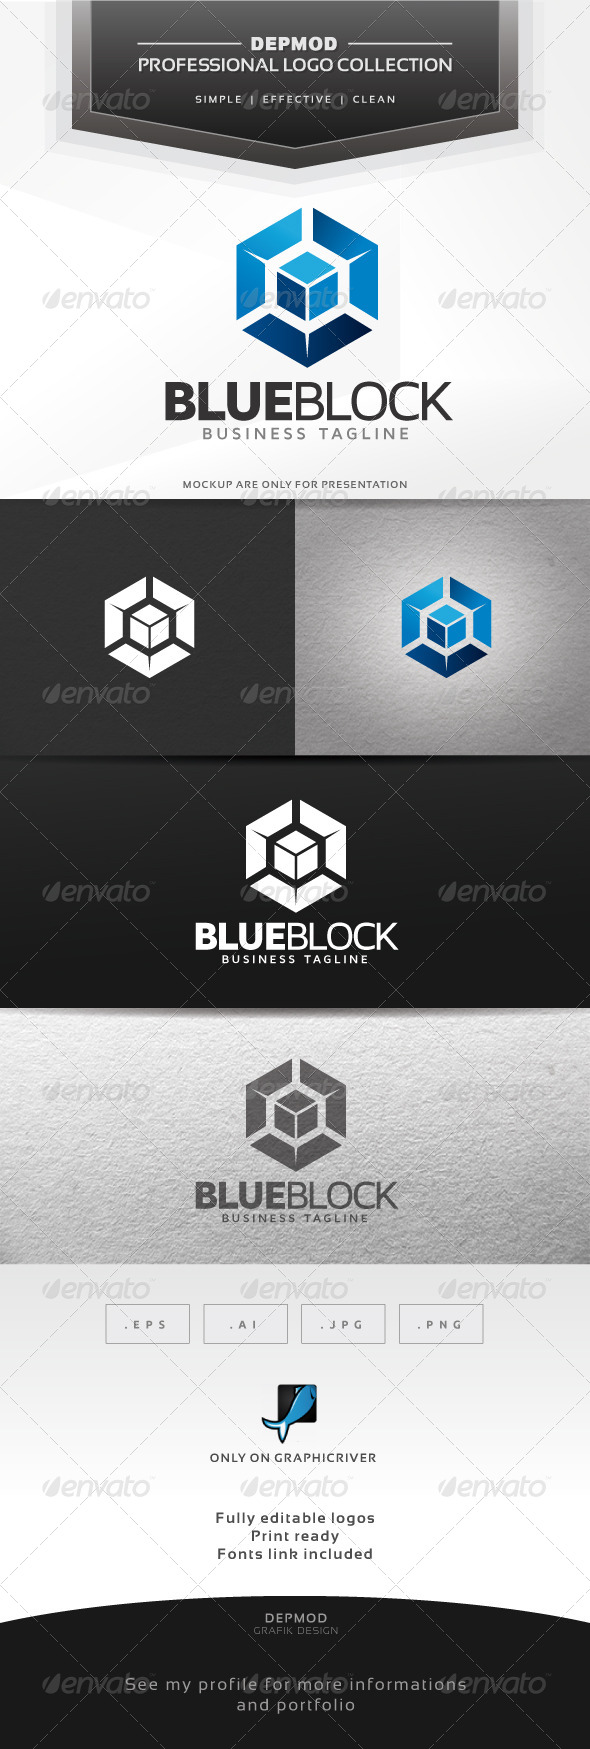 Blue Block Logo - Abstract Logo Templates